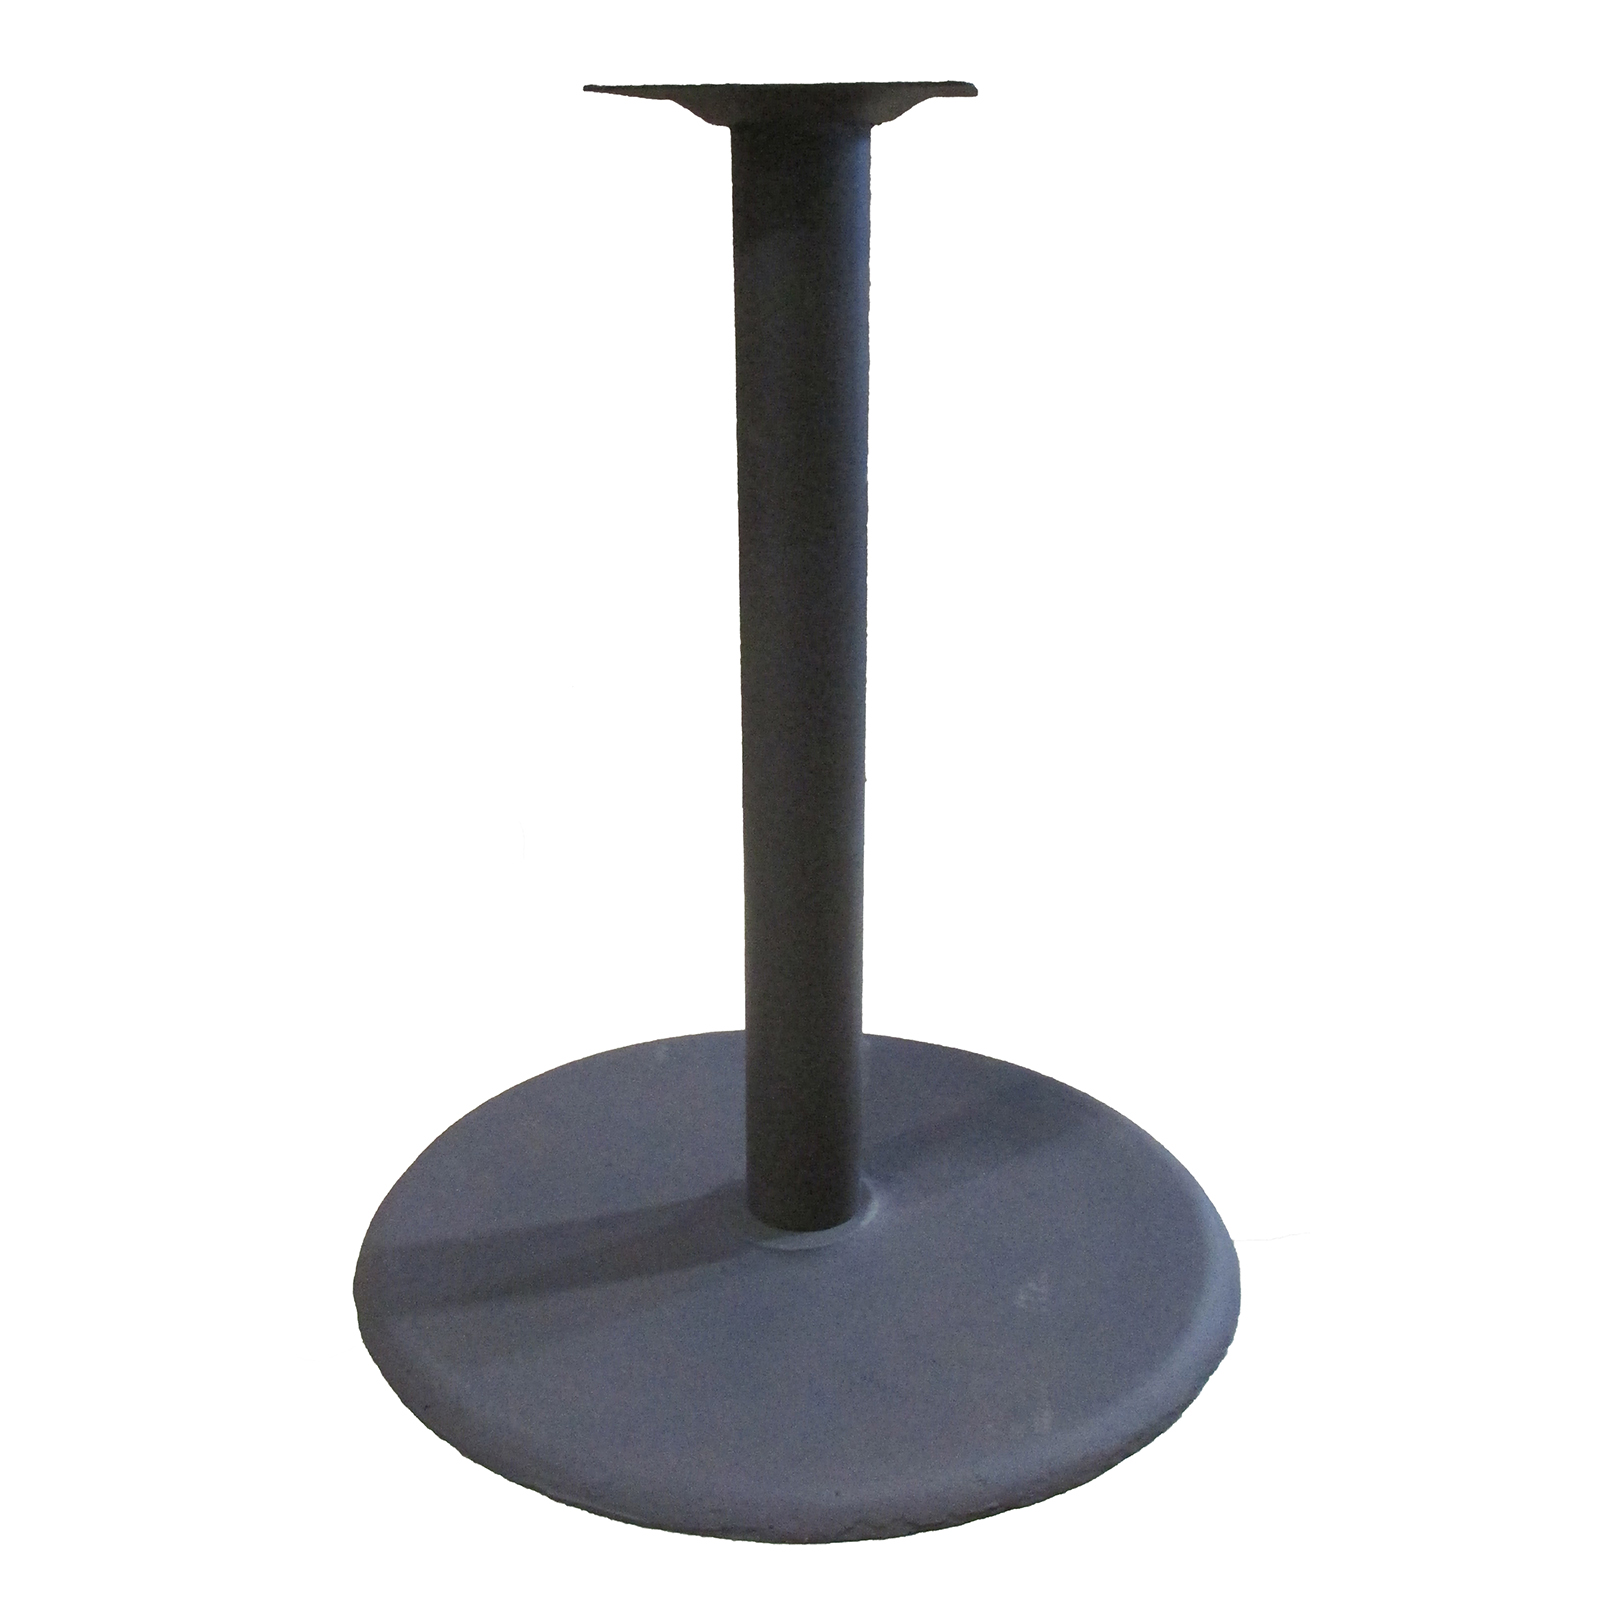 Oak Street B30DISC-STD table base, metal